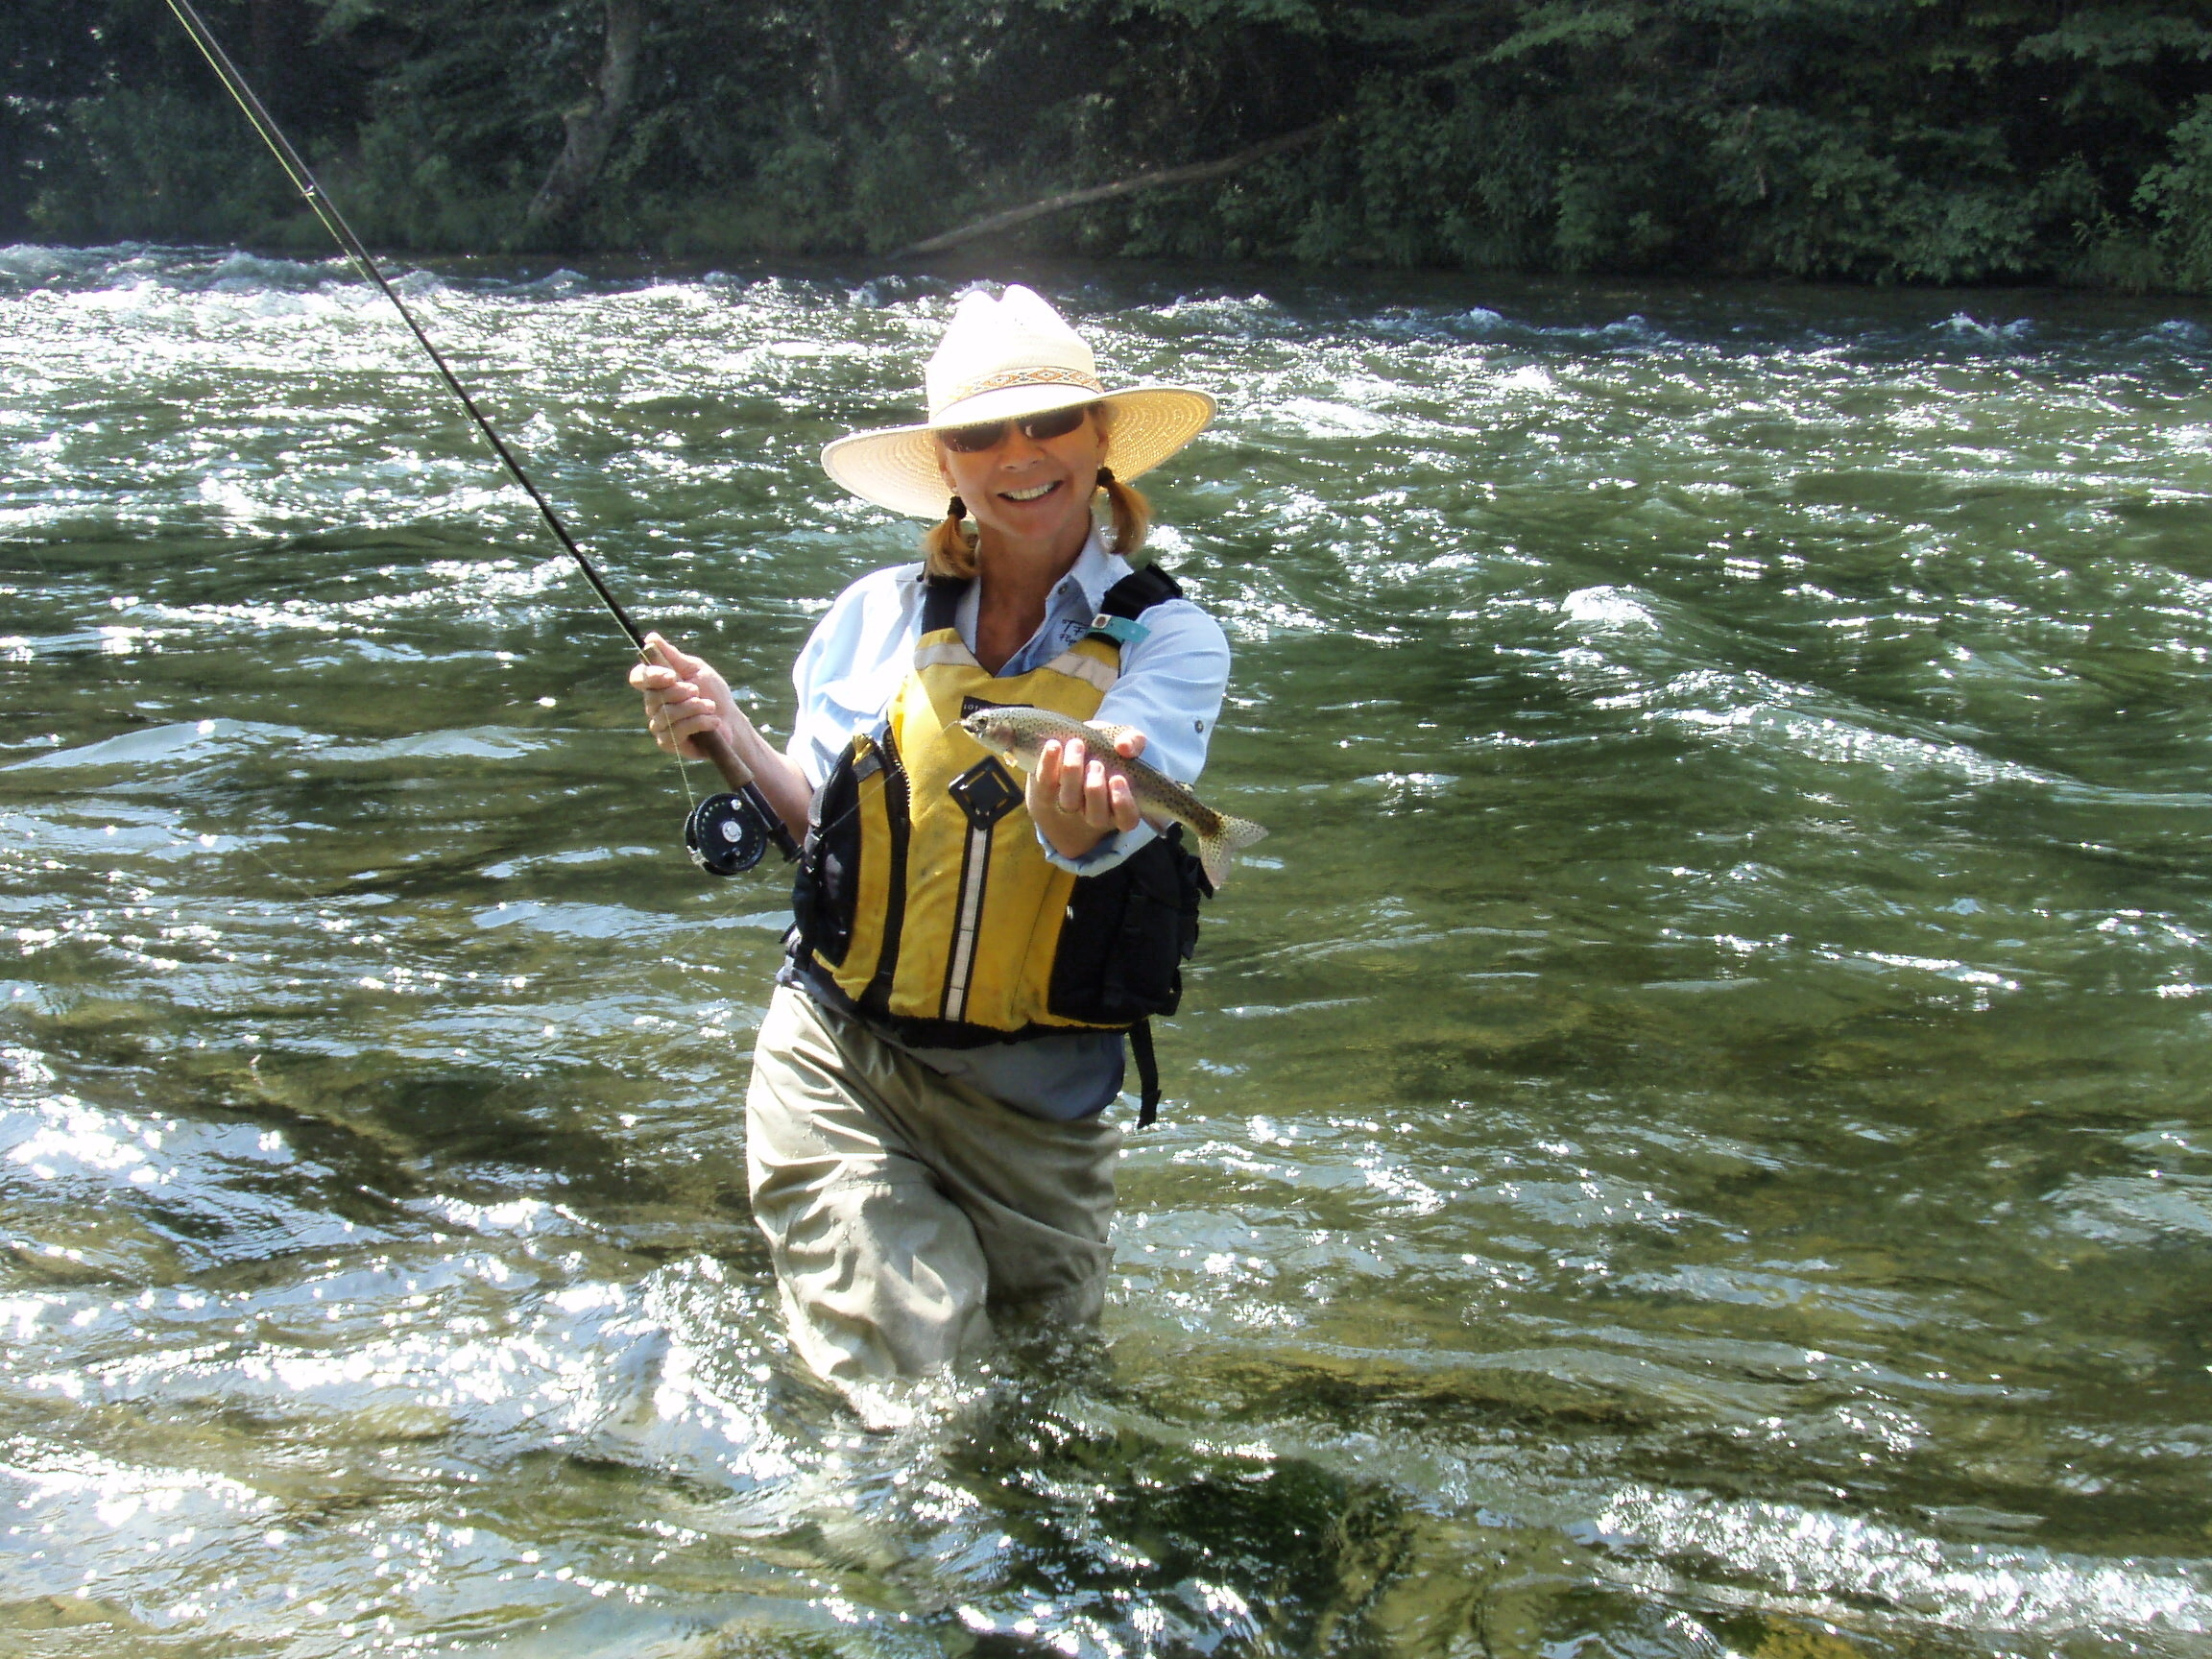 Wnc fly fishing trail in jackson county nc for Fishing lessons near me